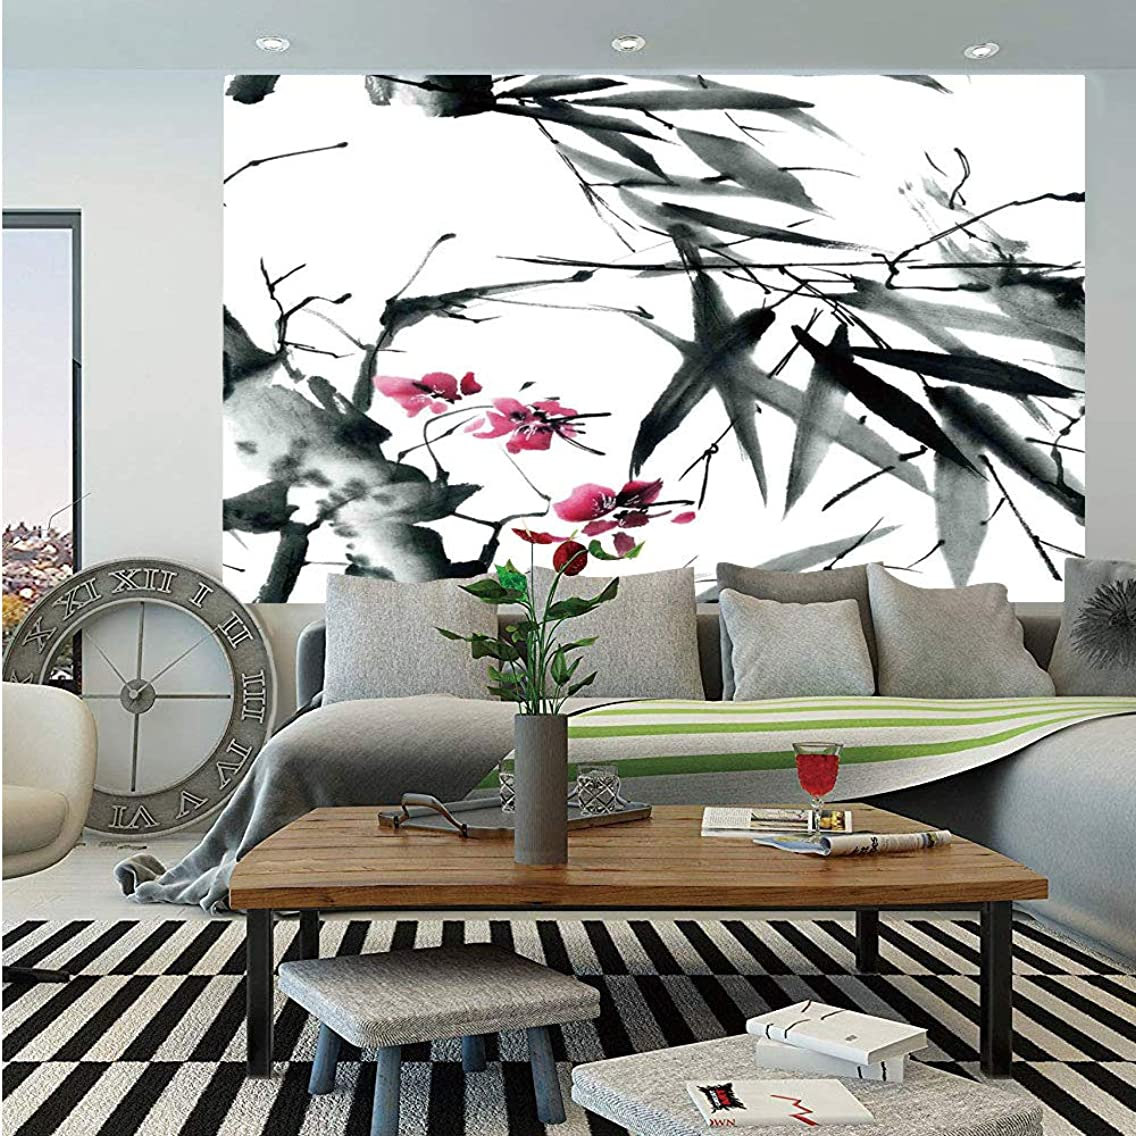 Traditional House Decor Wall Mural,Natural Sacred Bamboo Stems Cherry Blossom Folk Art Print,Self-Adhesive Large Wallpaper for Home Decor 83x120 inches,Dark Green Fuchsia